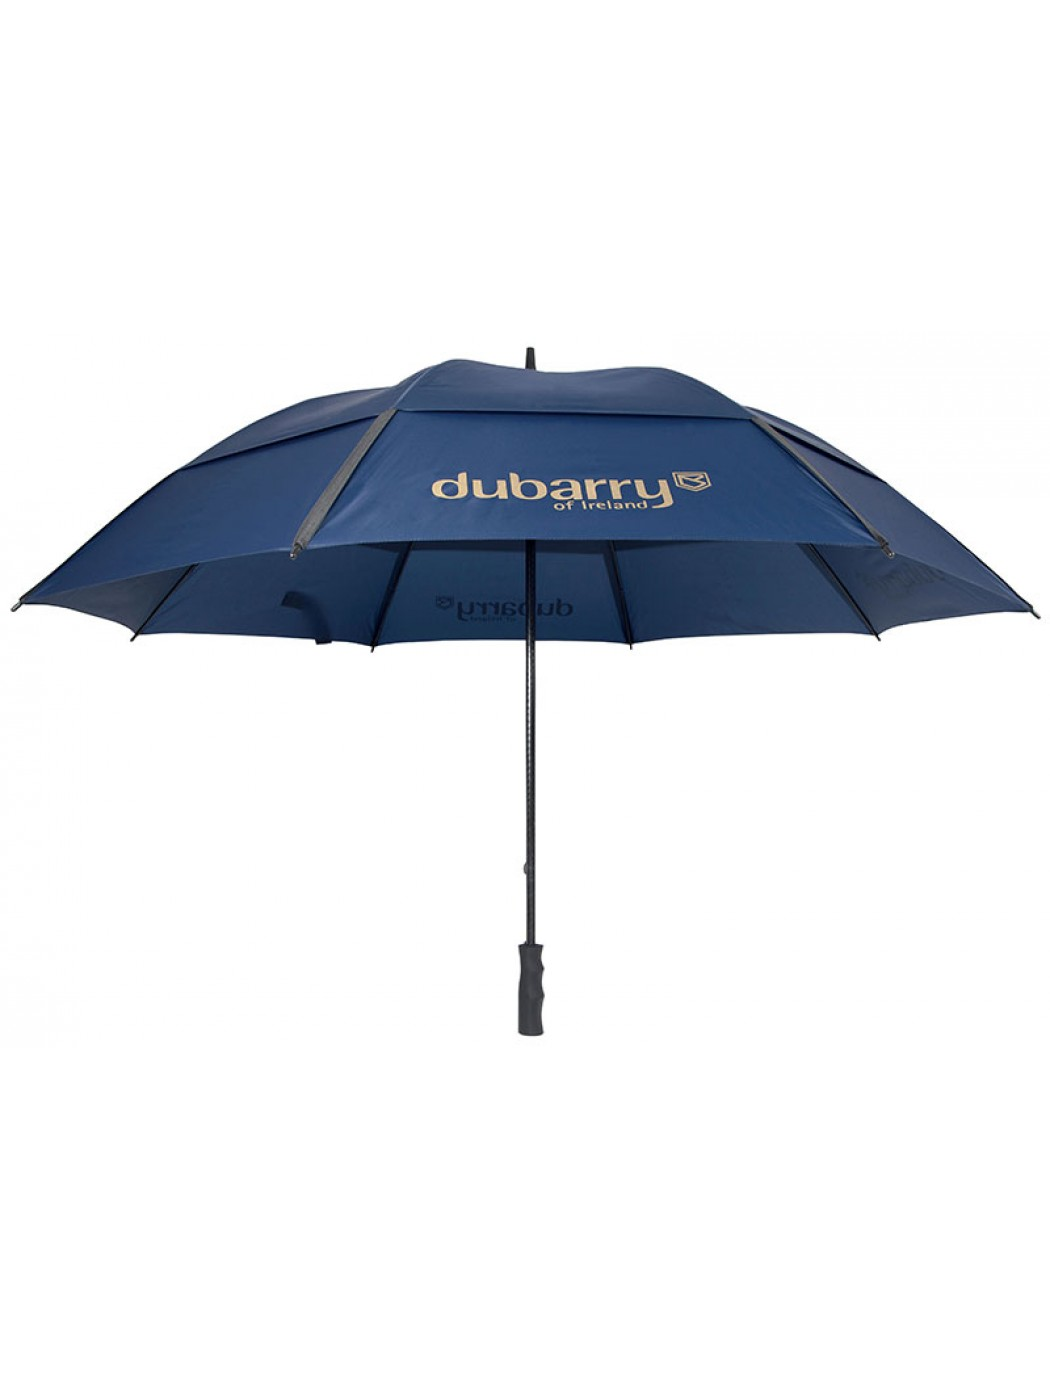 umbrella-accessories-navy-01 1